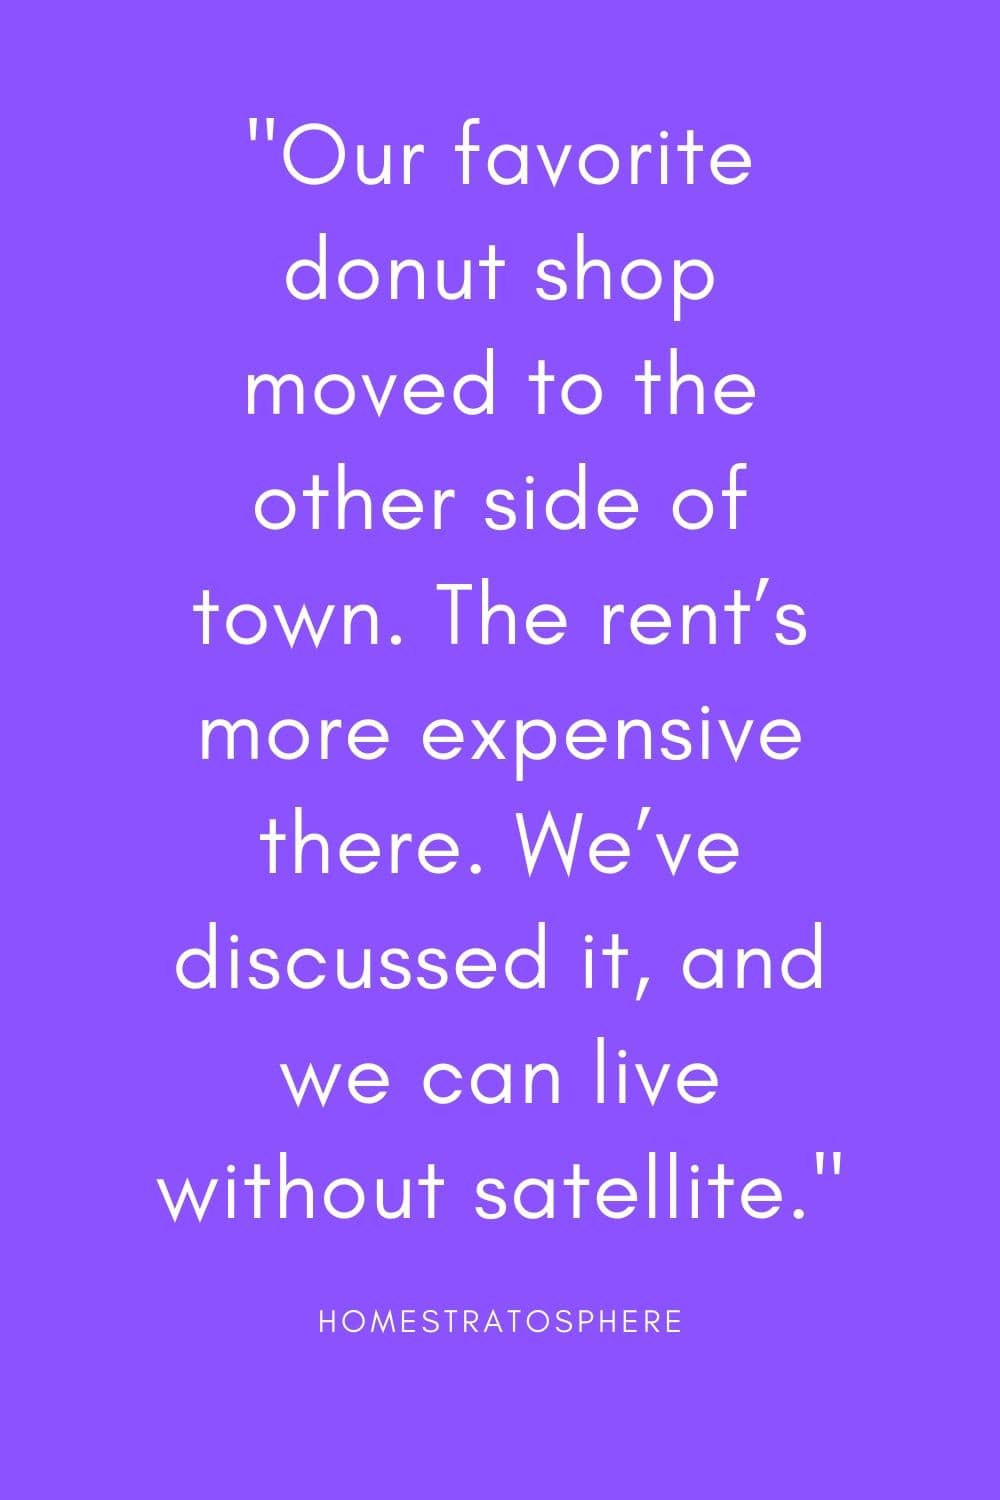 """Our favorite donut shop moved to the other side of town. The rent's more expensive there. We've discussed it, and we can live without satellite."""